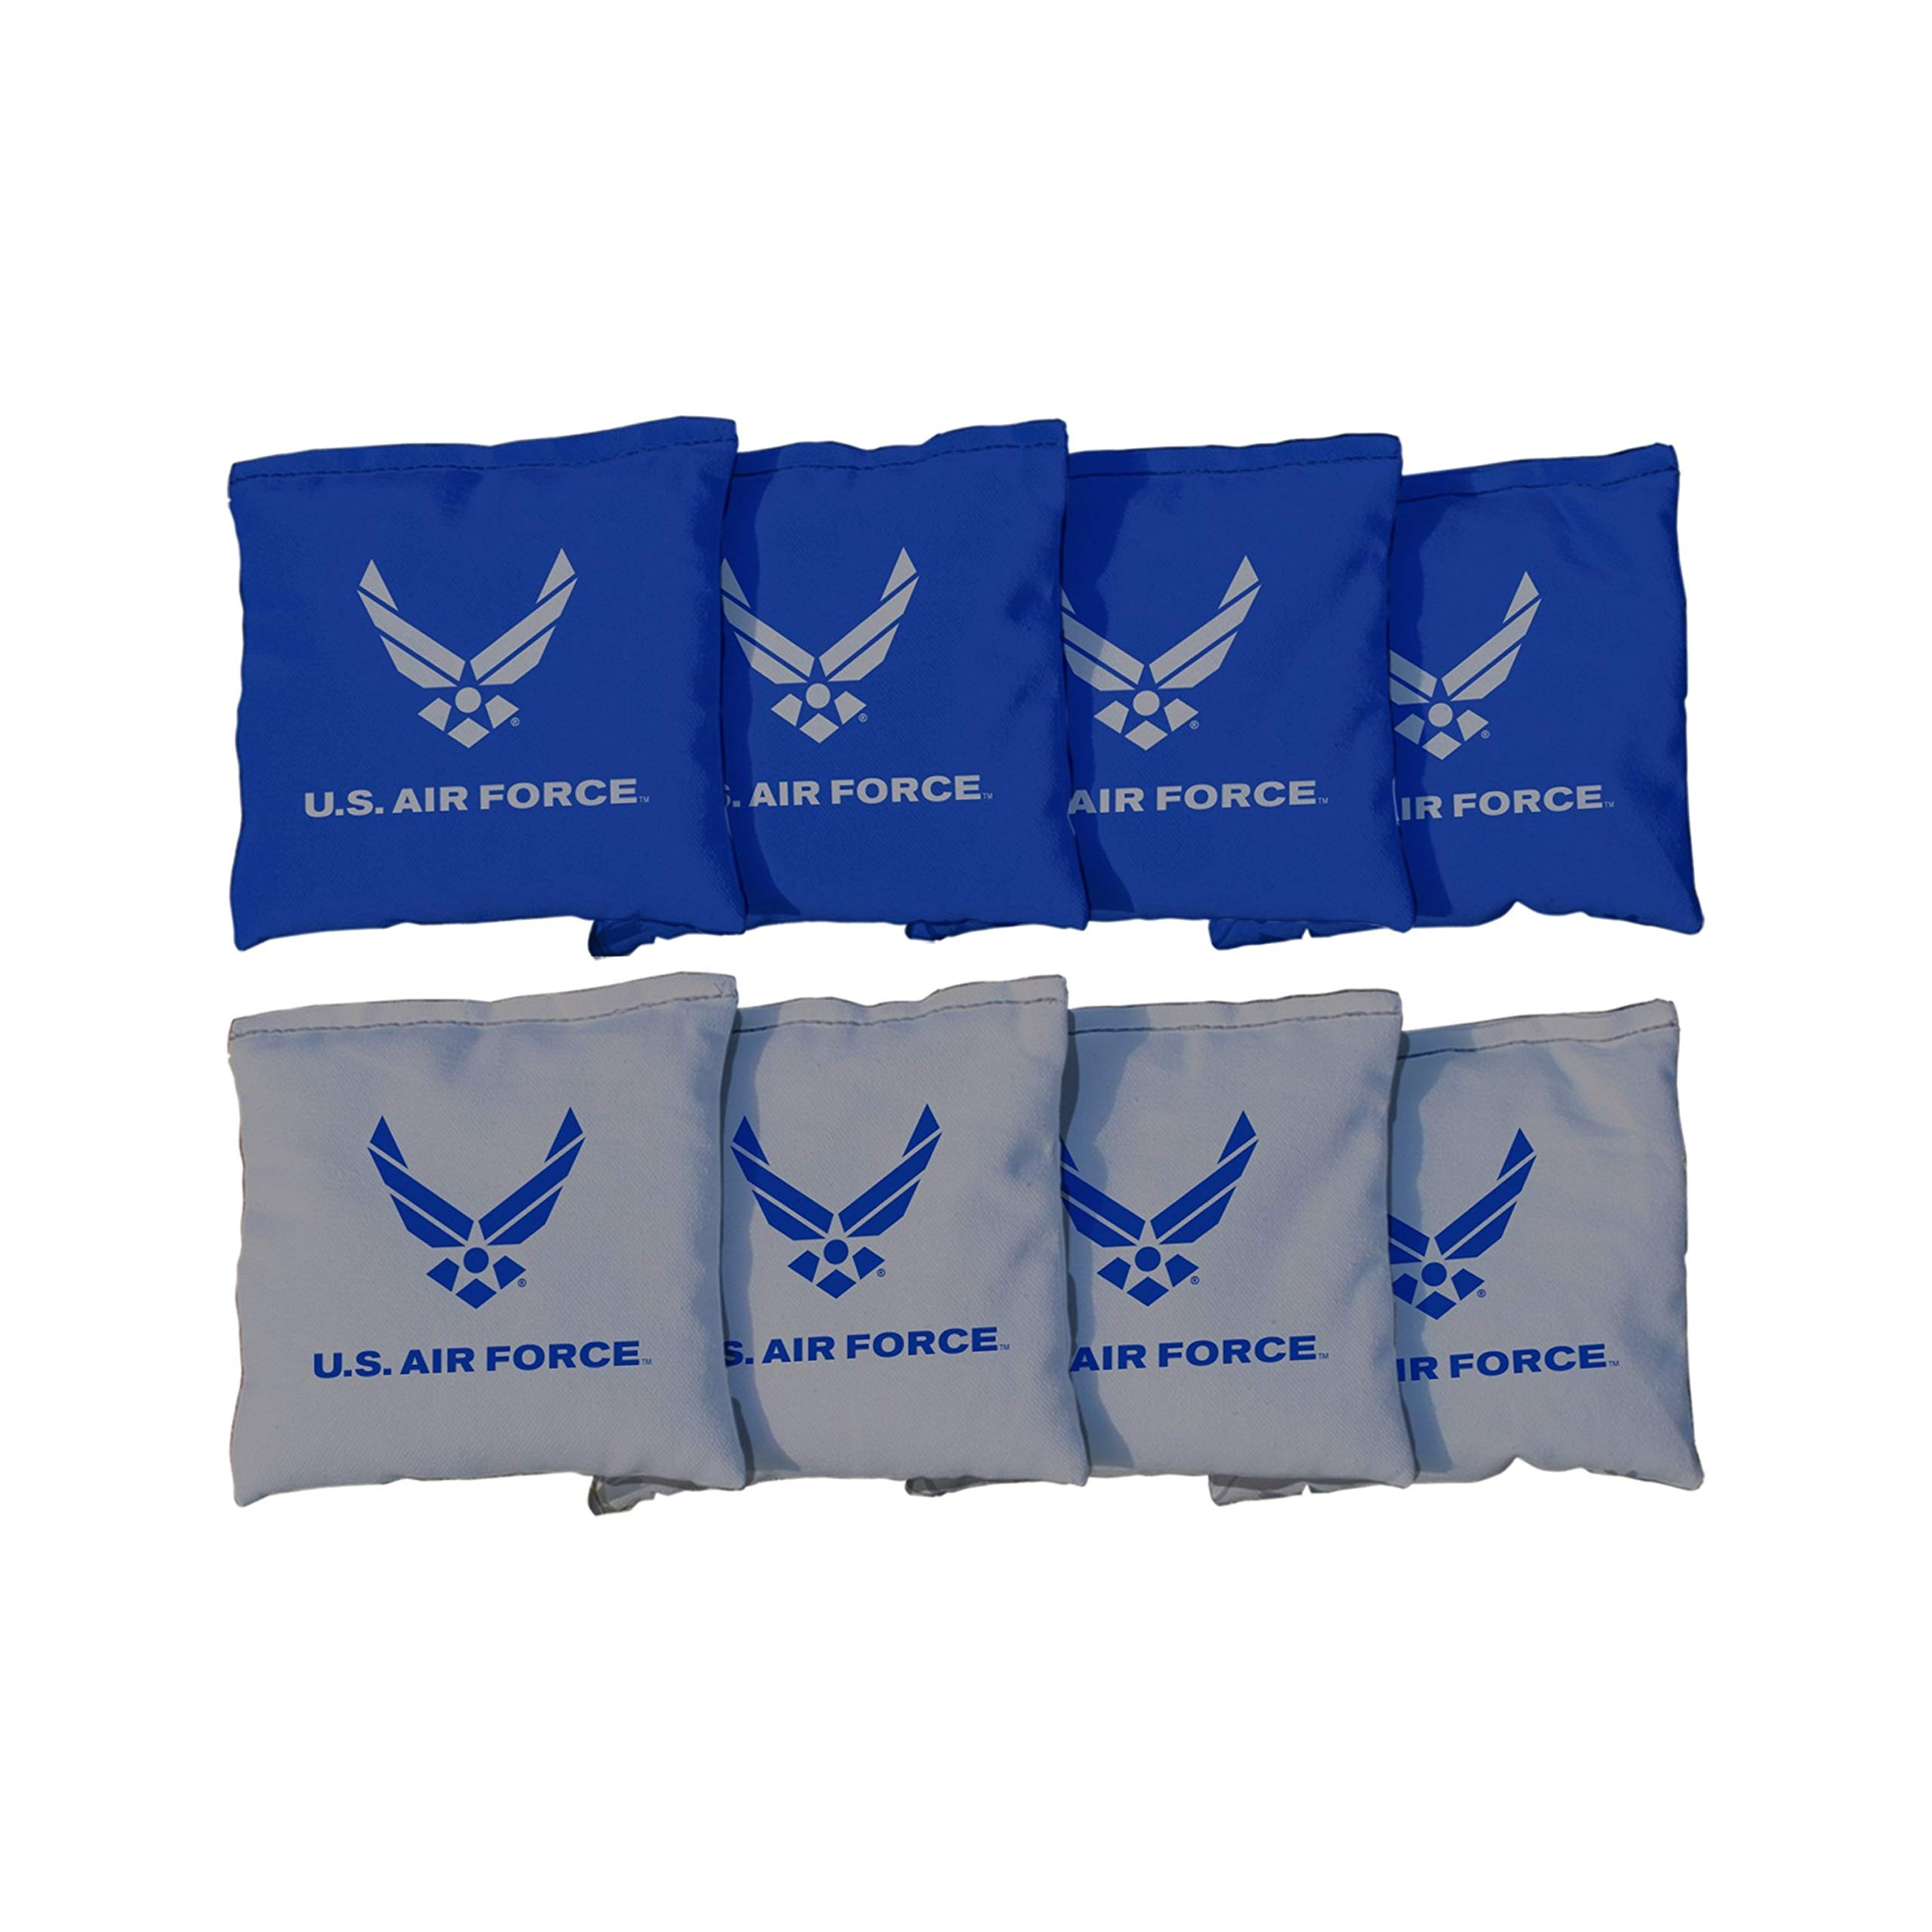 Victory Tailgate NCAA Collegiate Regulation Cornhole Game Bag Set (8 Bags Included, Corn-Filled) - Air Force - Air Force Academy - Falcons by Victory Tailgate